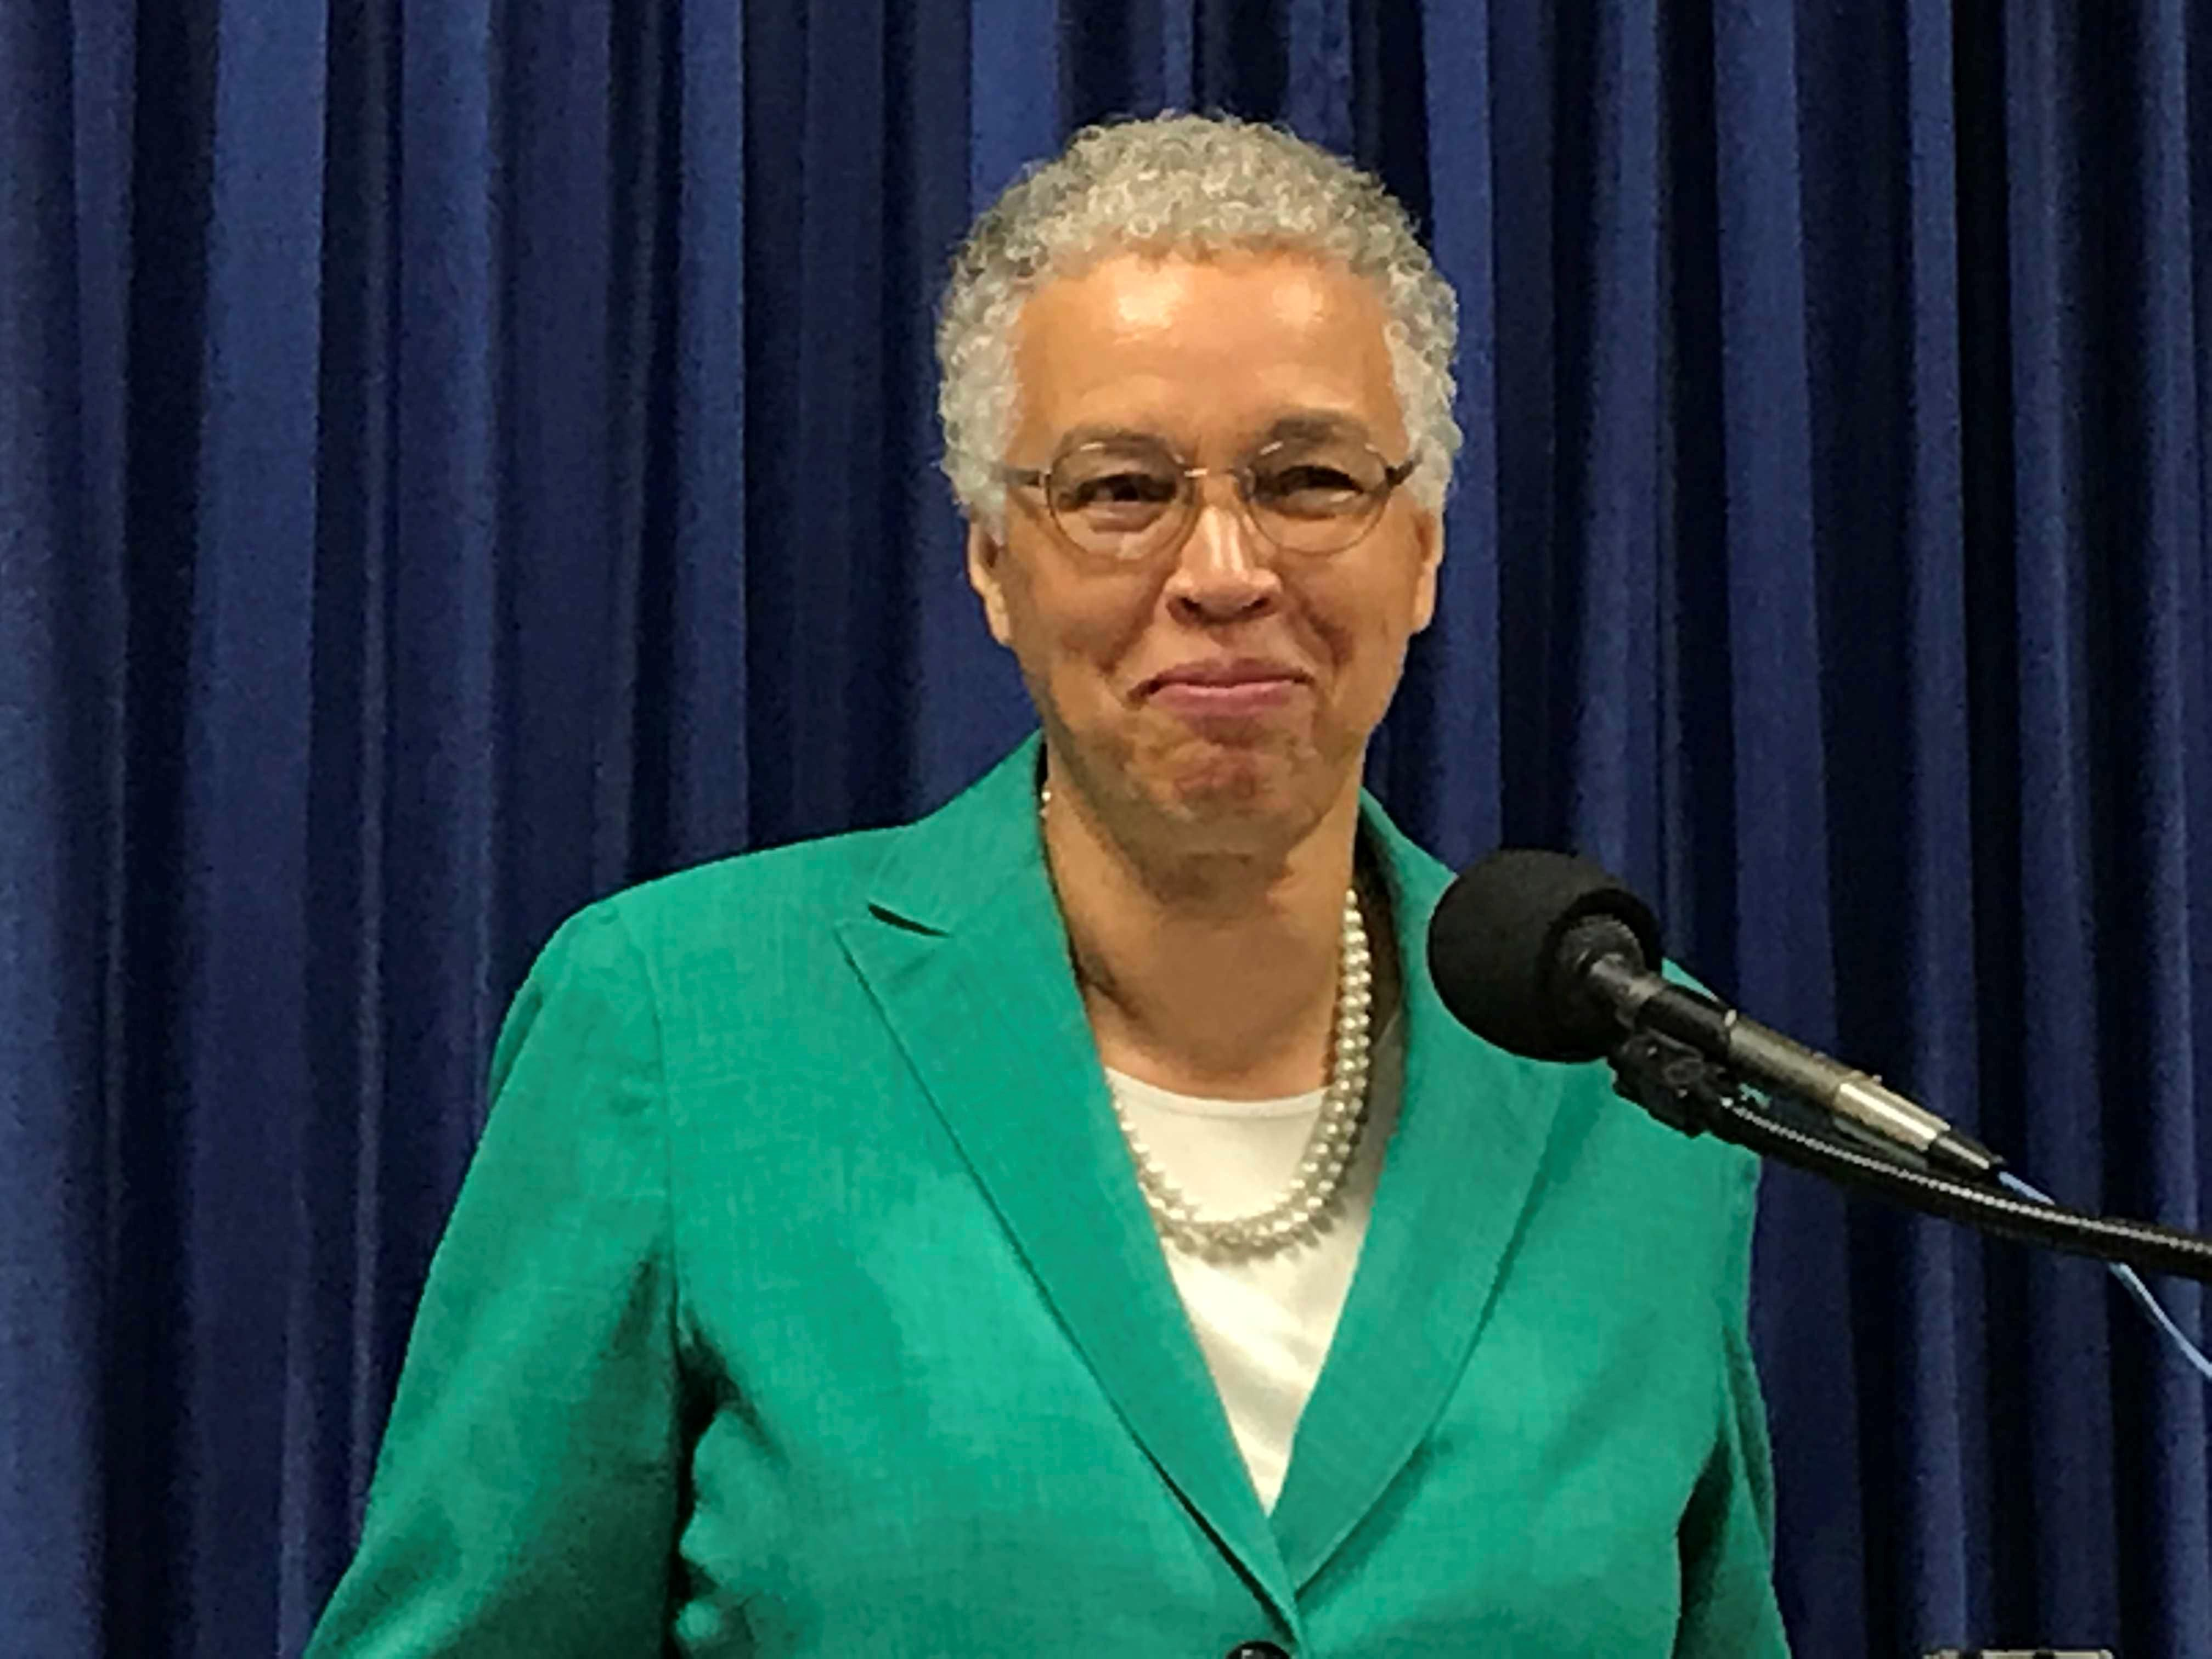 Preckwinkle receives a controversial campaign contribution